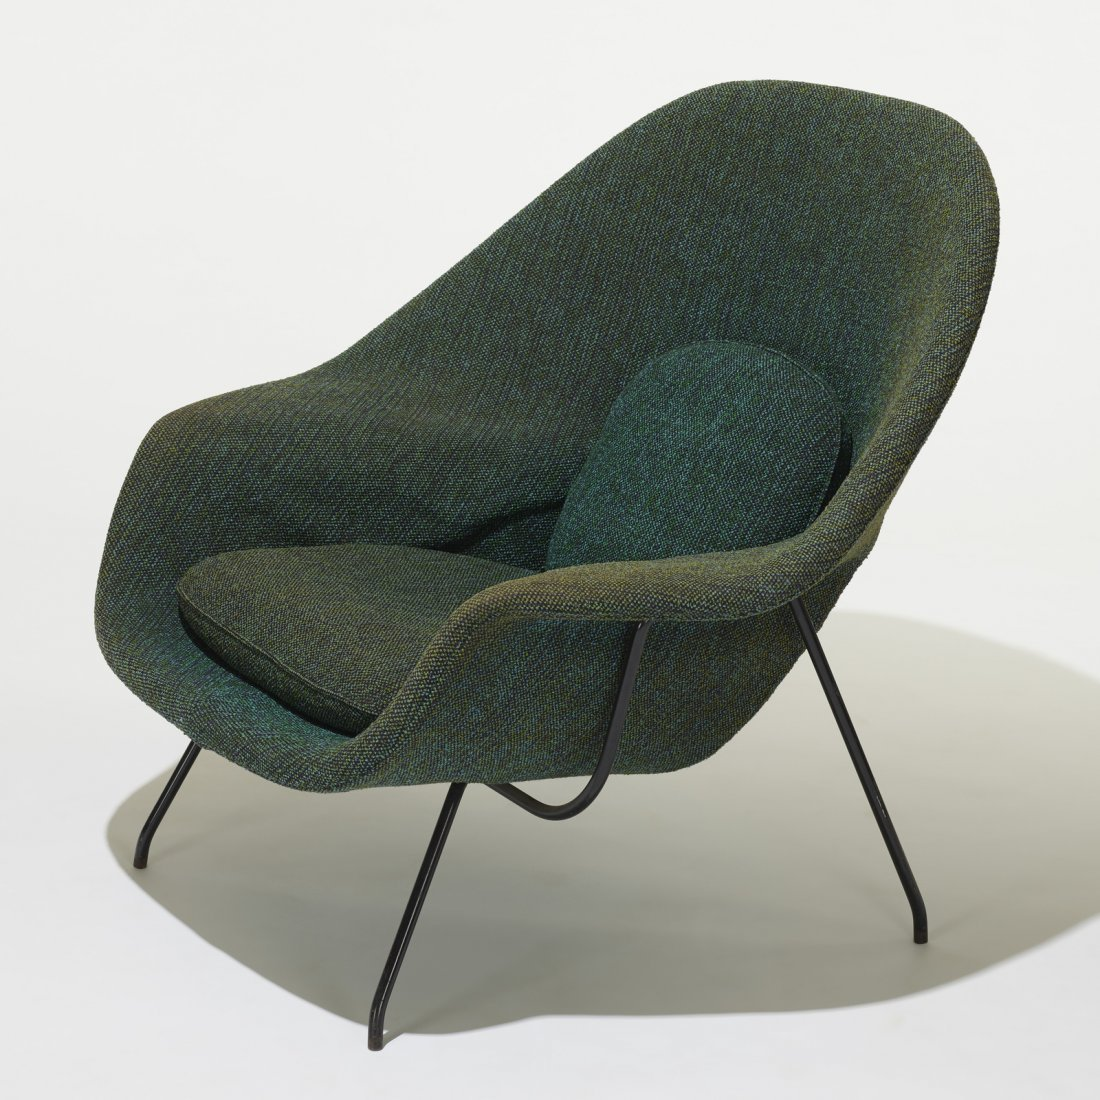 Eero Saarinen, Womb chair and ottoman - 2